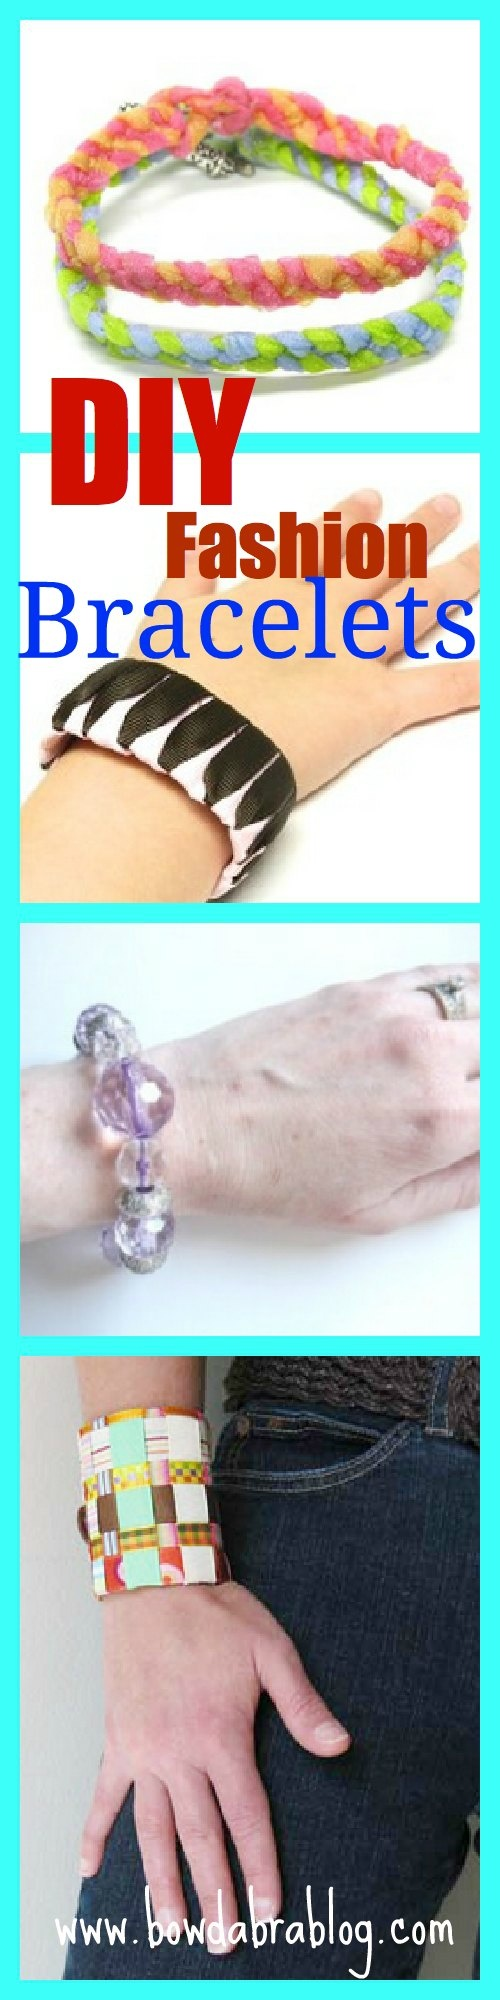 Fashion DIY Bracelets- fun variety http://bowdabrablog.com/2012/06/18/summer-fashions-matching-beaded-ribbon-necklace-and-bracelet/